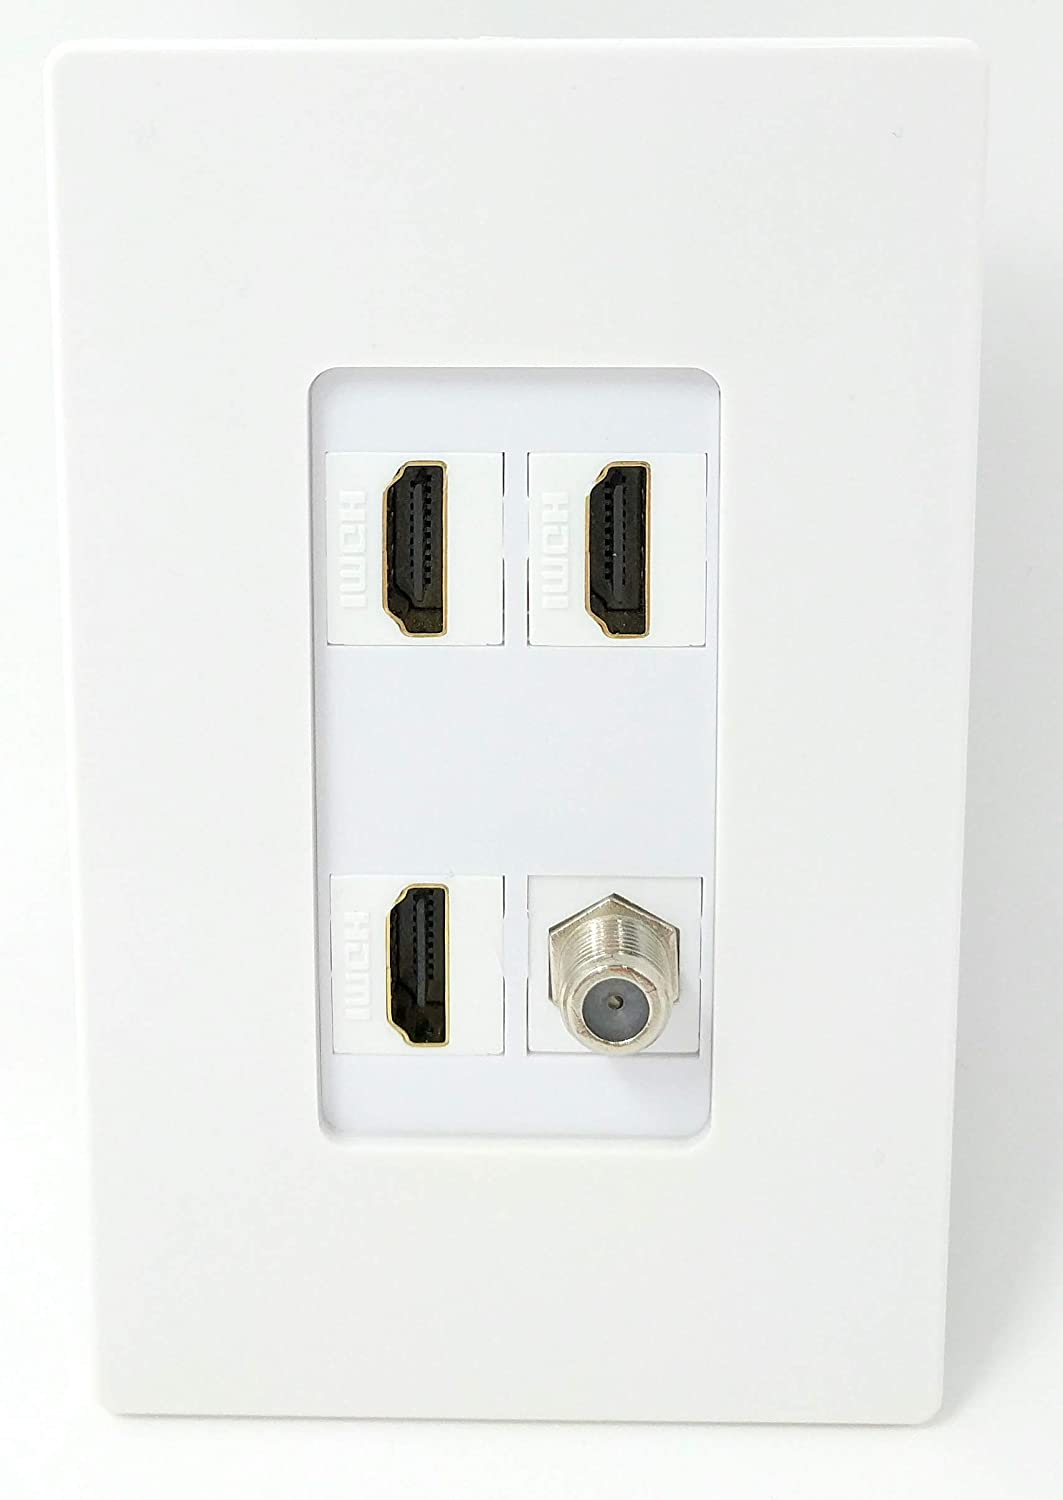 RiteAV 2 HDMI and 1 Coax Cable TV F Type Port Wall Plate White Decorative